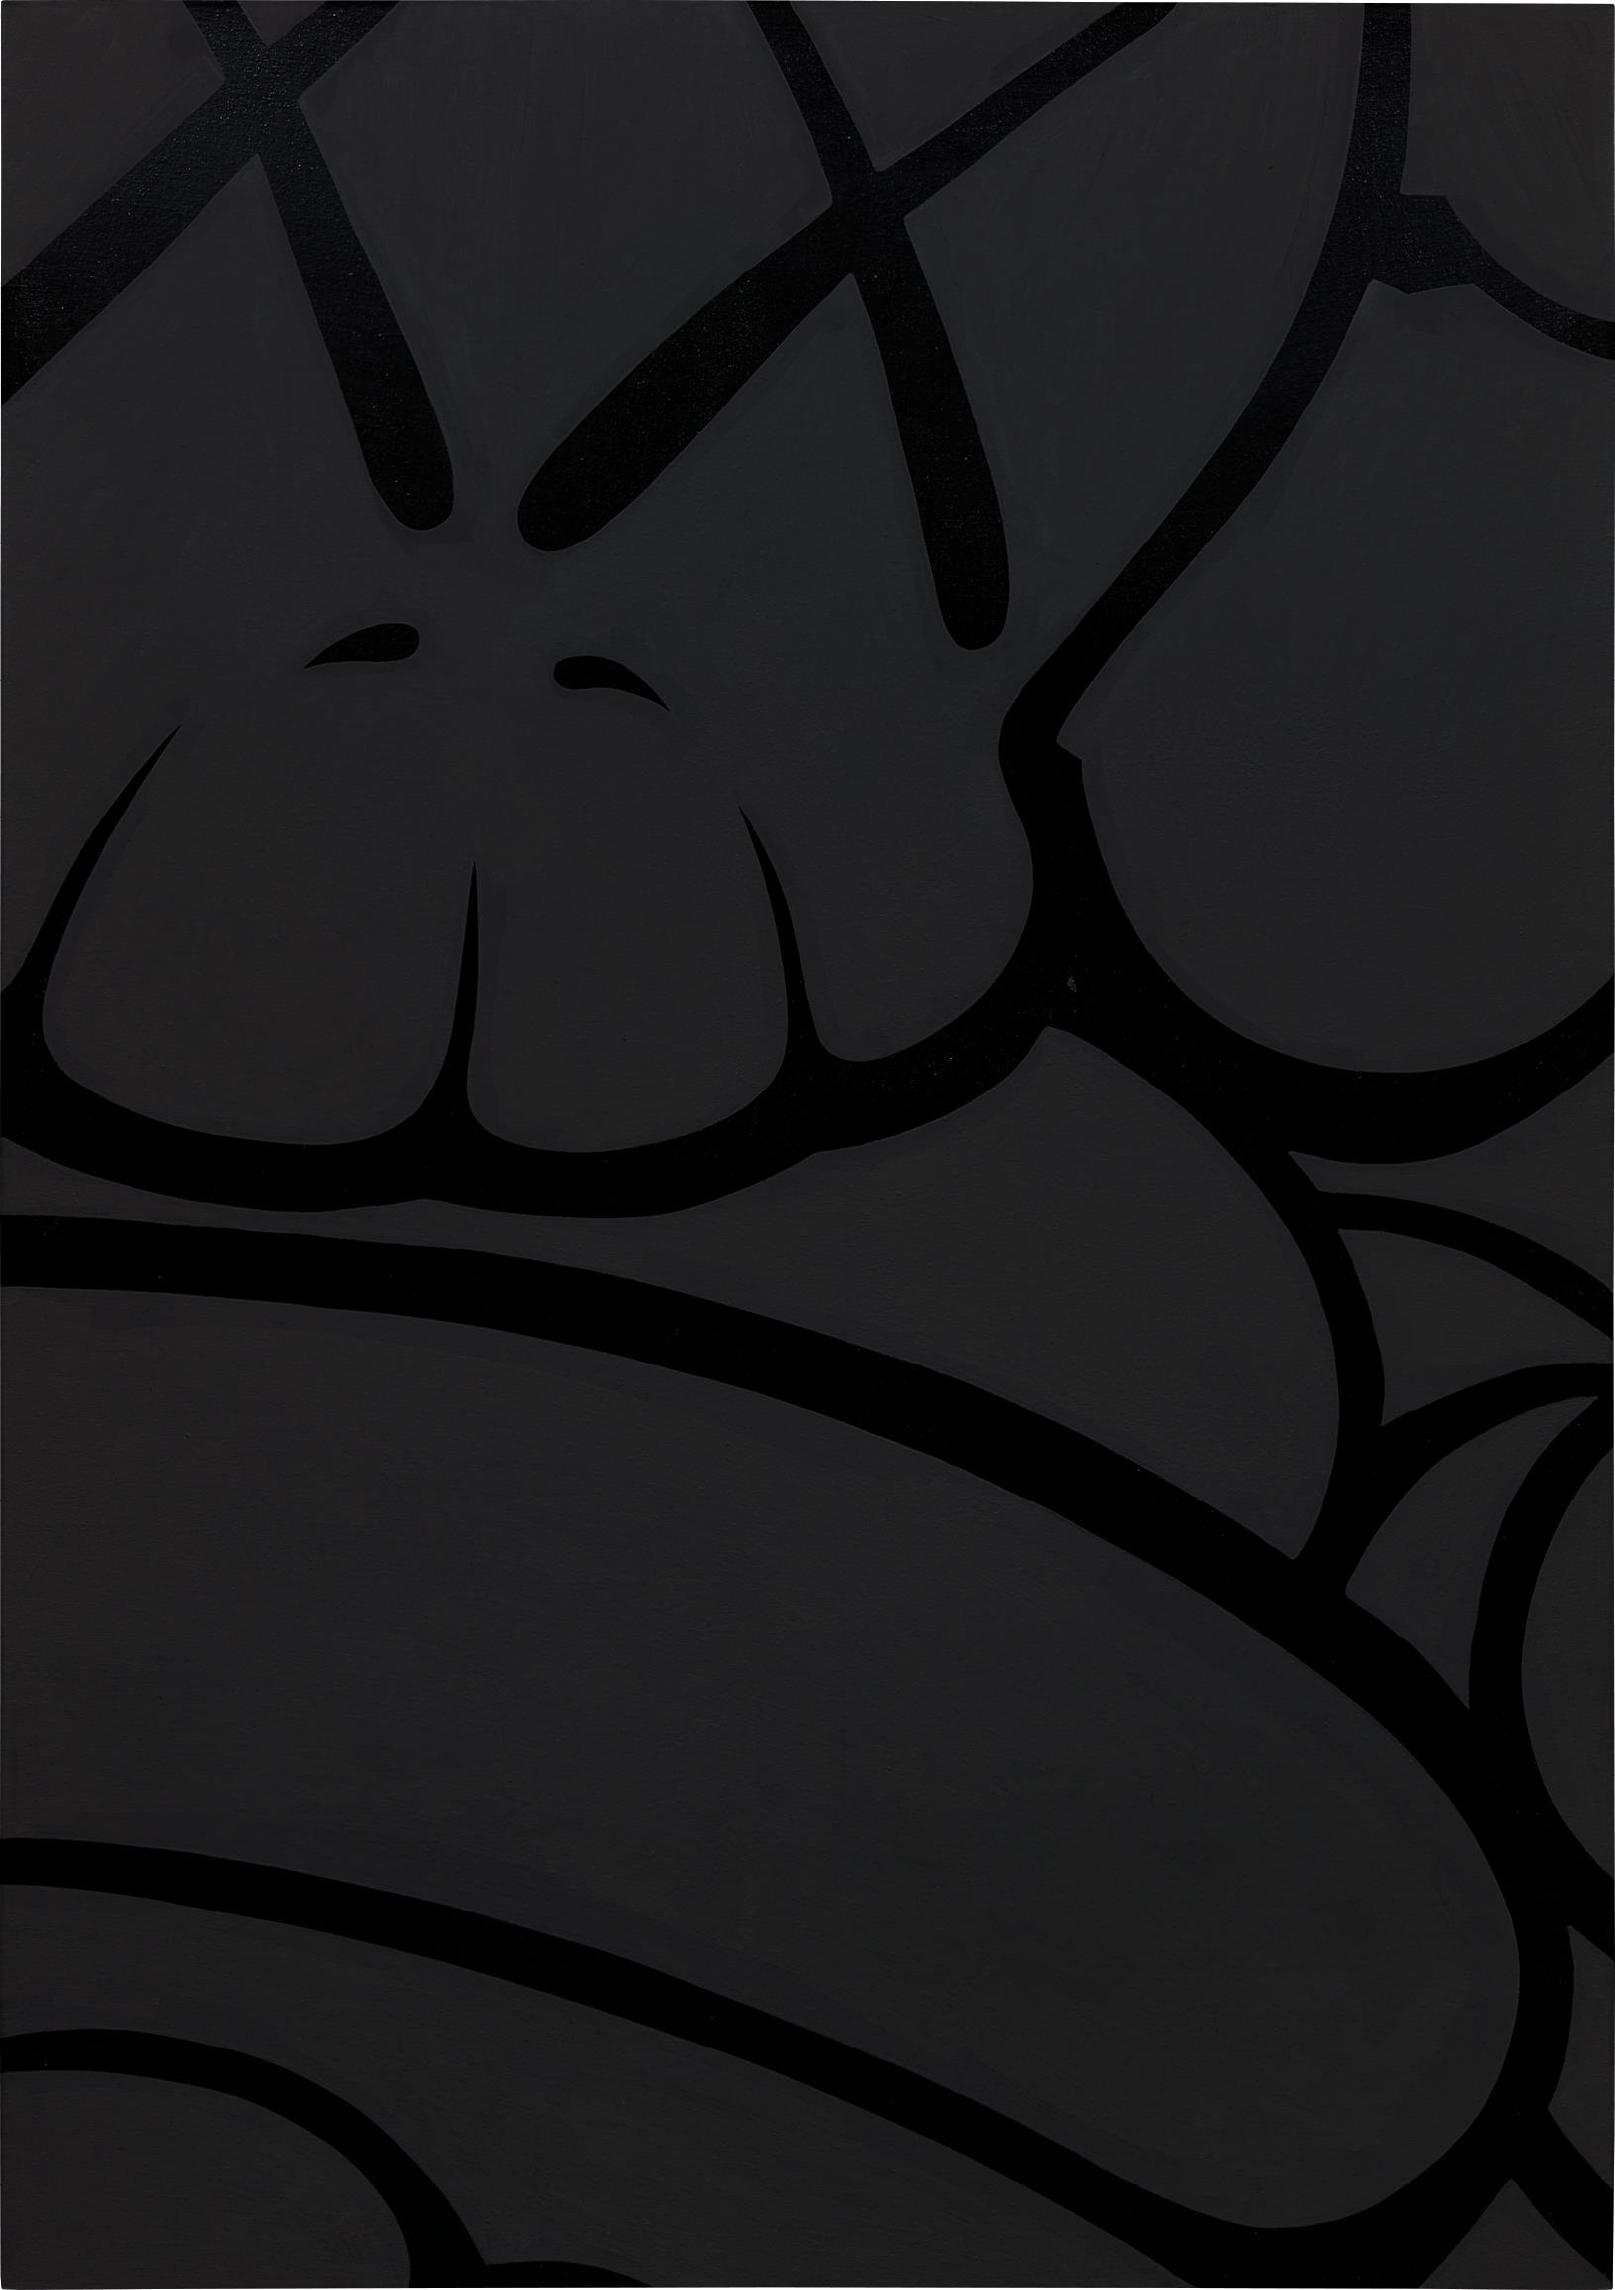 KAWS-Untitled (Bb2)-2000